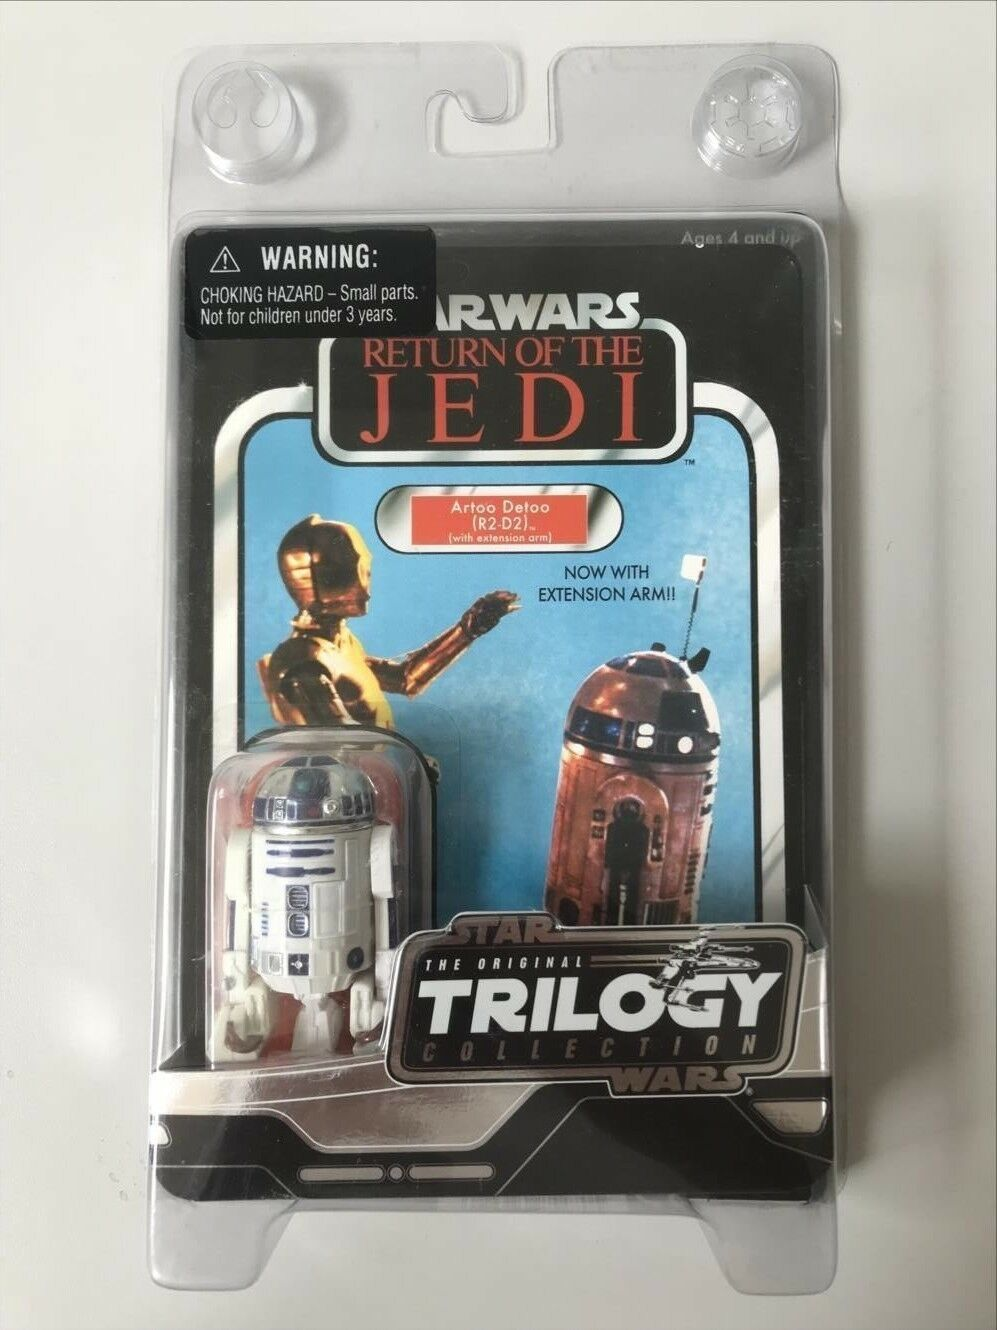 SIGILLATA FIGURA ACTION STAR WARS THE ORIGINAL COLLEZIONE TRILOGY R2-D2 JEDI